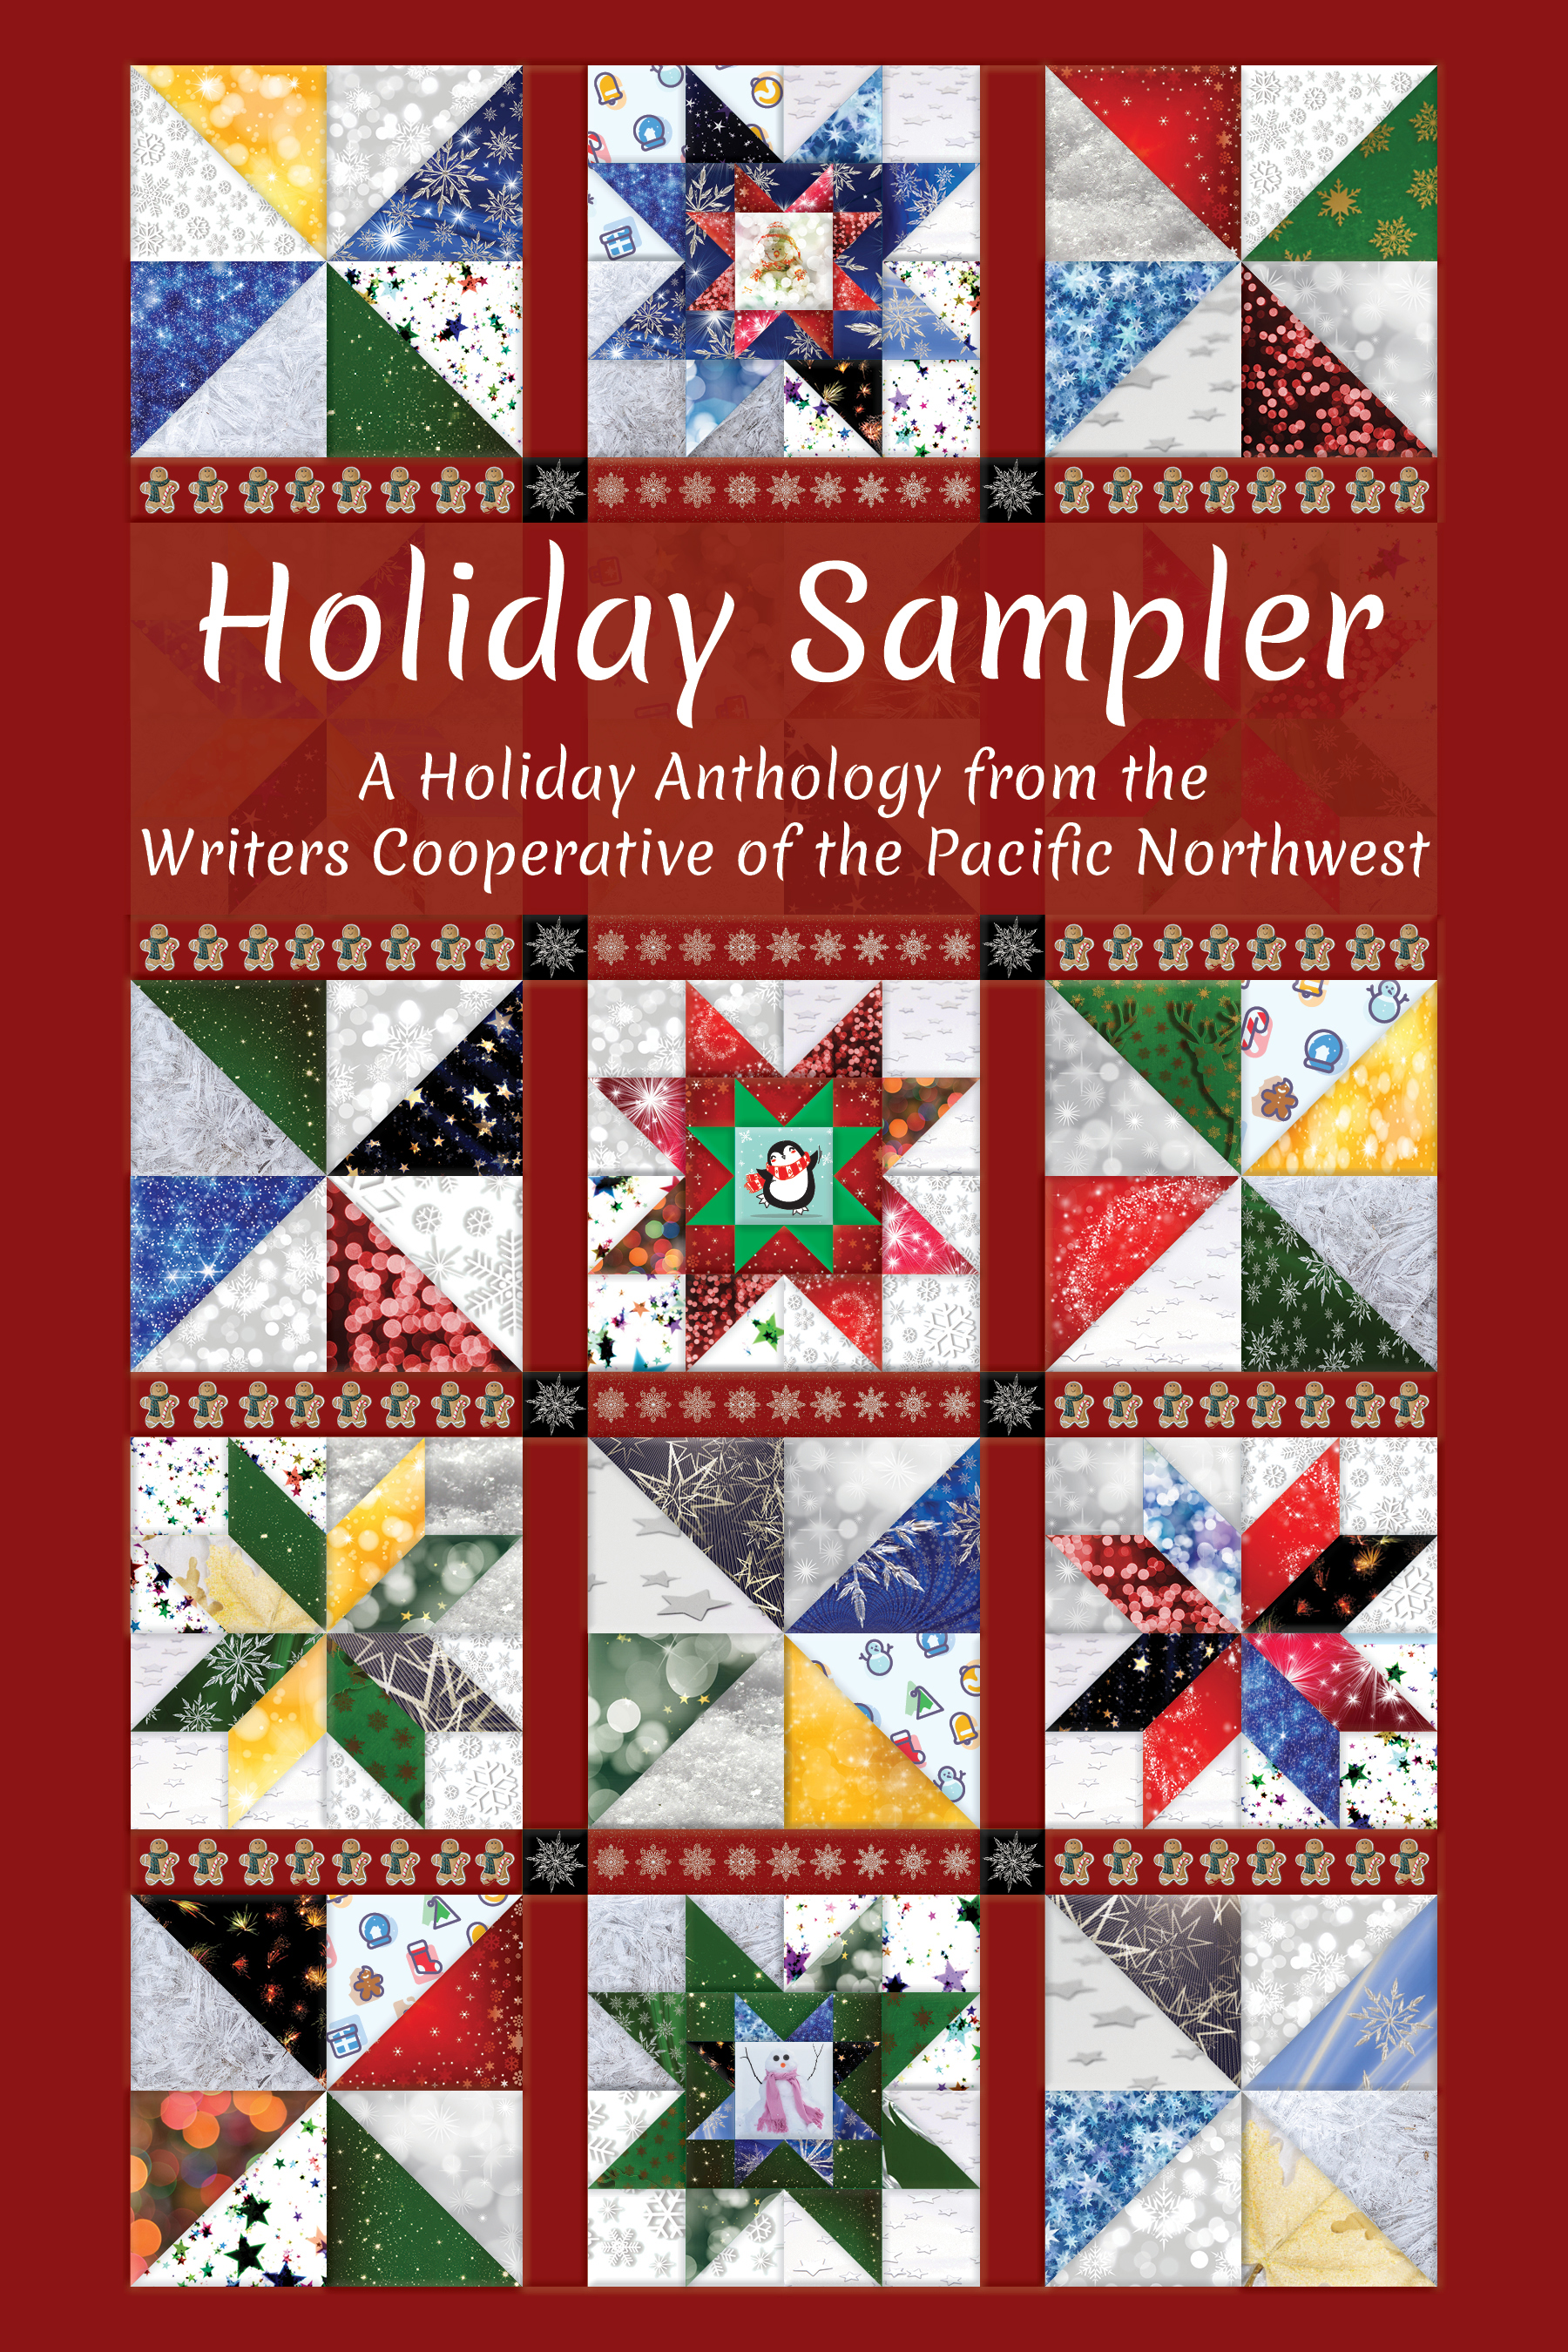 Holiday Sampler.jpg